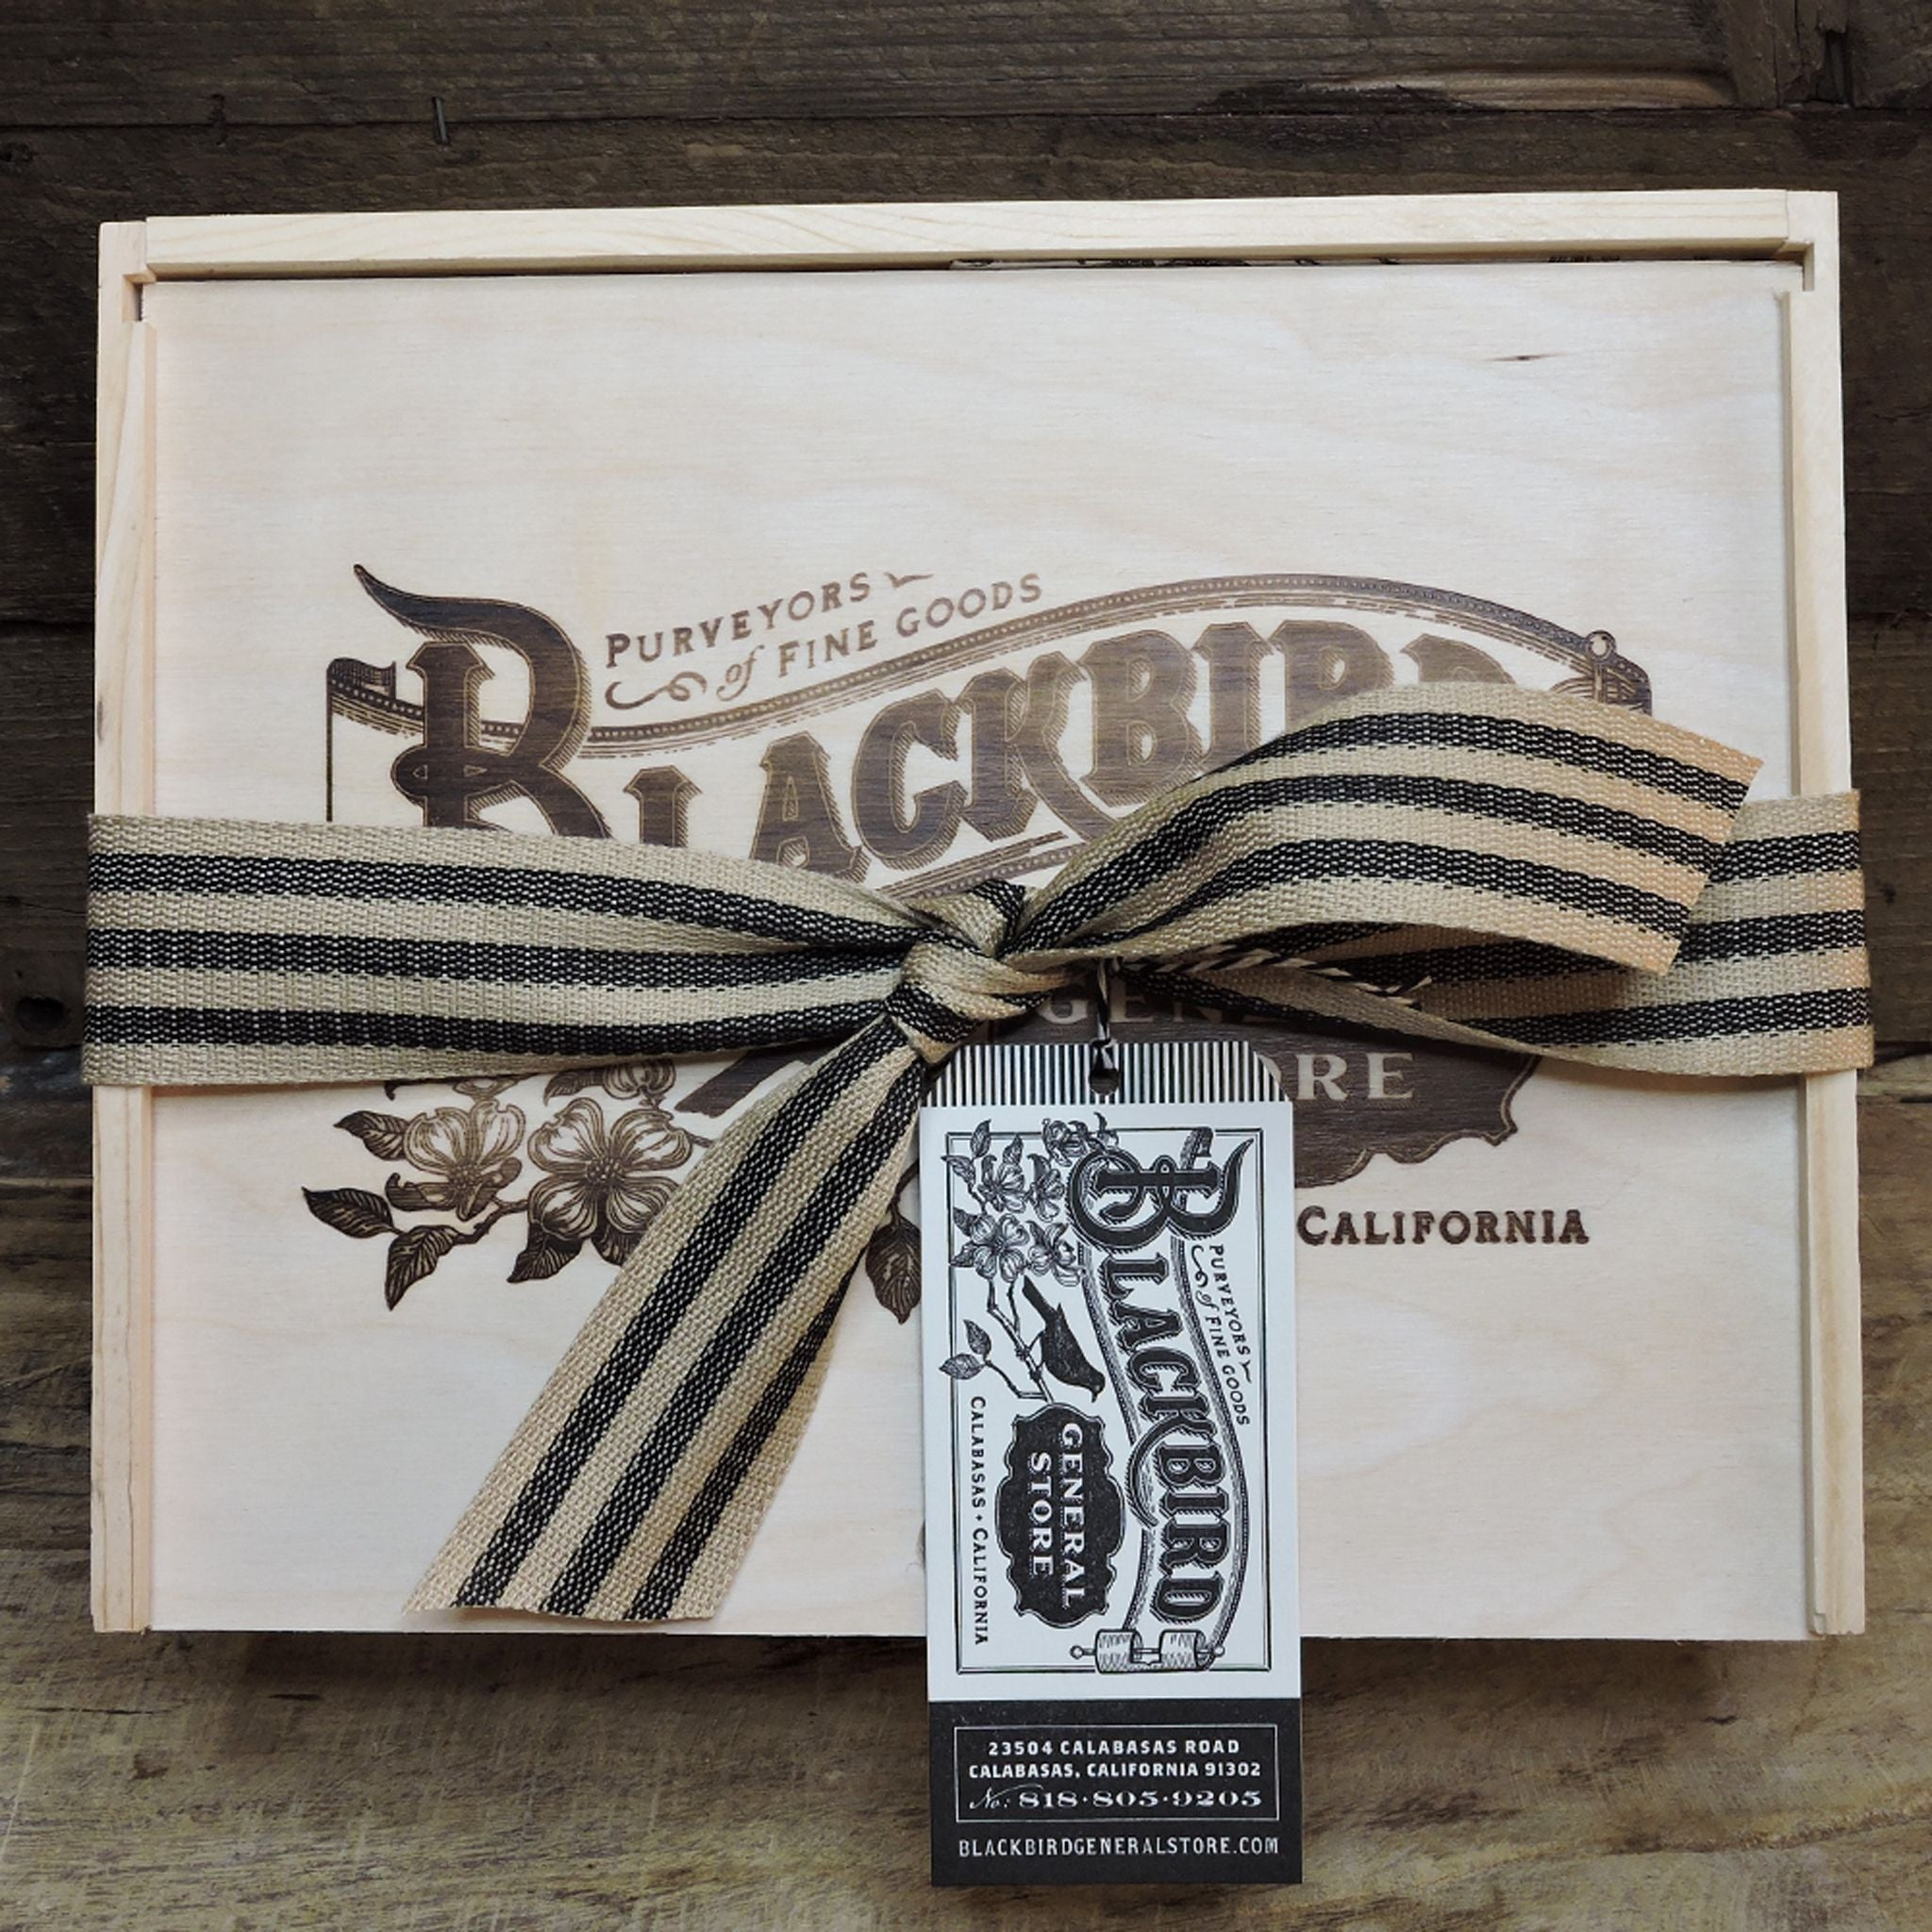 The New Pie Box - Blackbird General Store